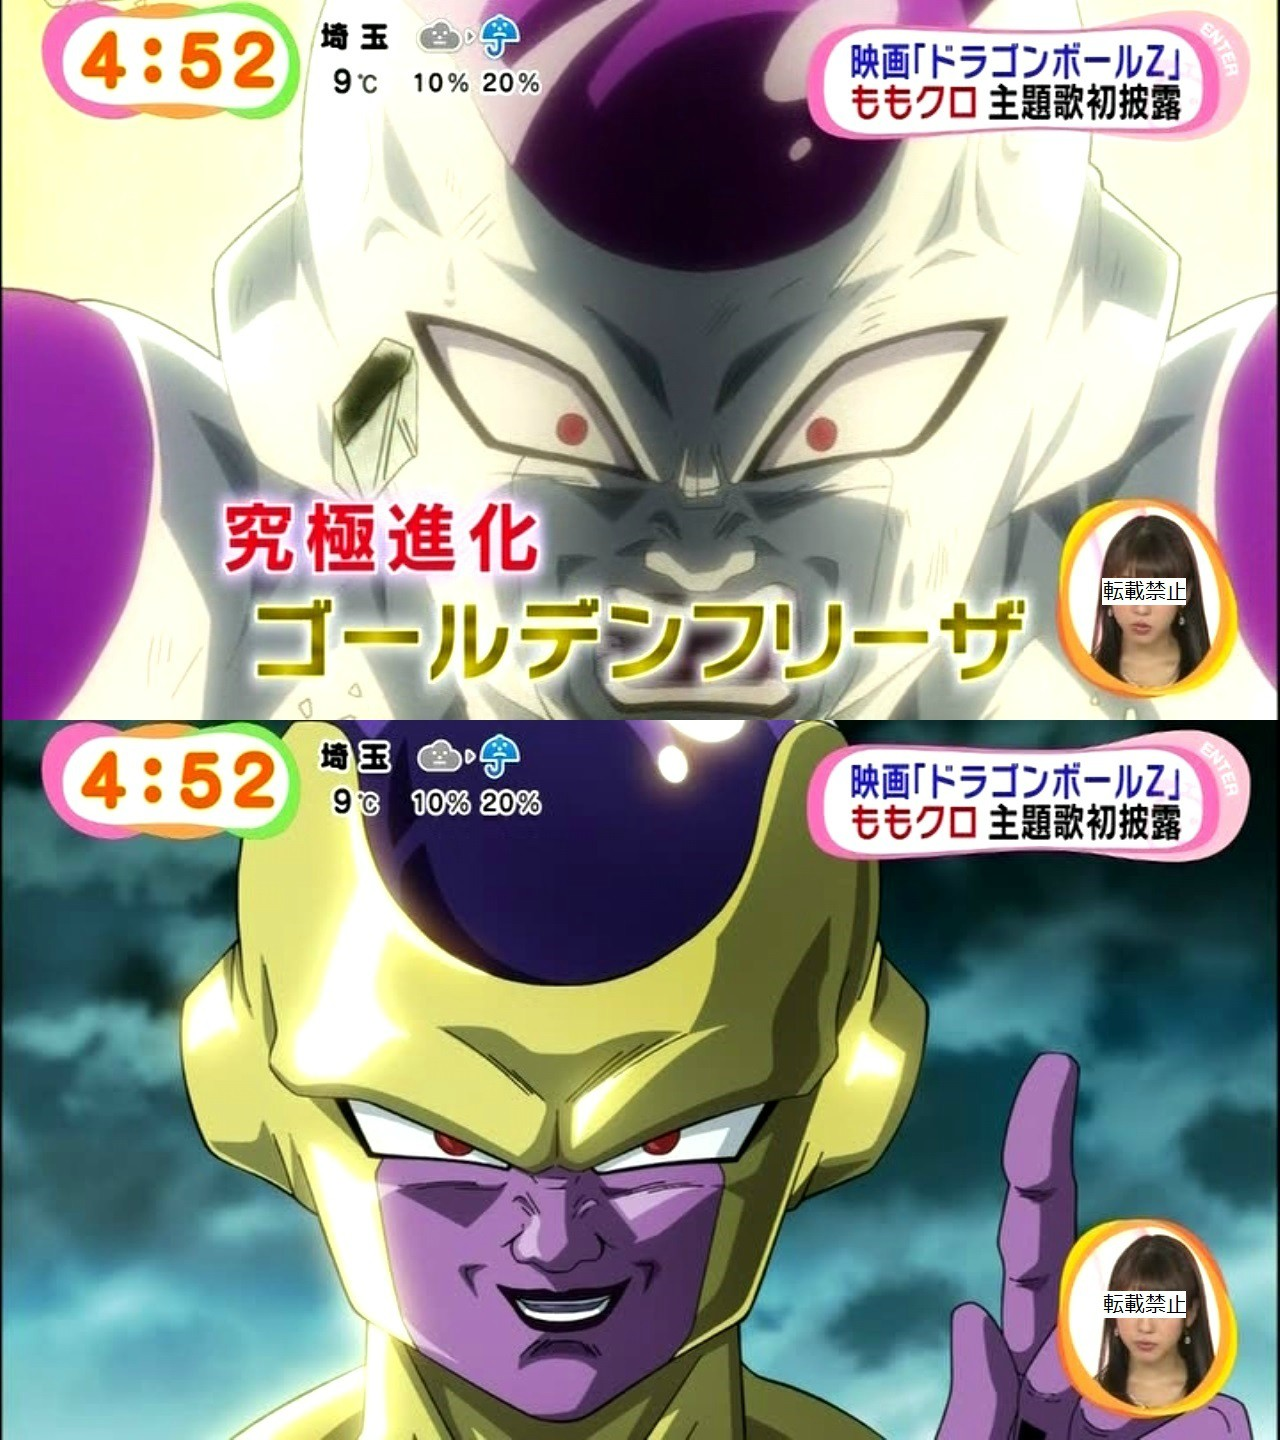 dragon-ball-z-fukkatsu-no-f-frieza-new-form-dragon-ball-ultimate-com-008